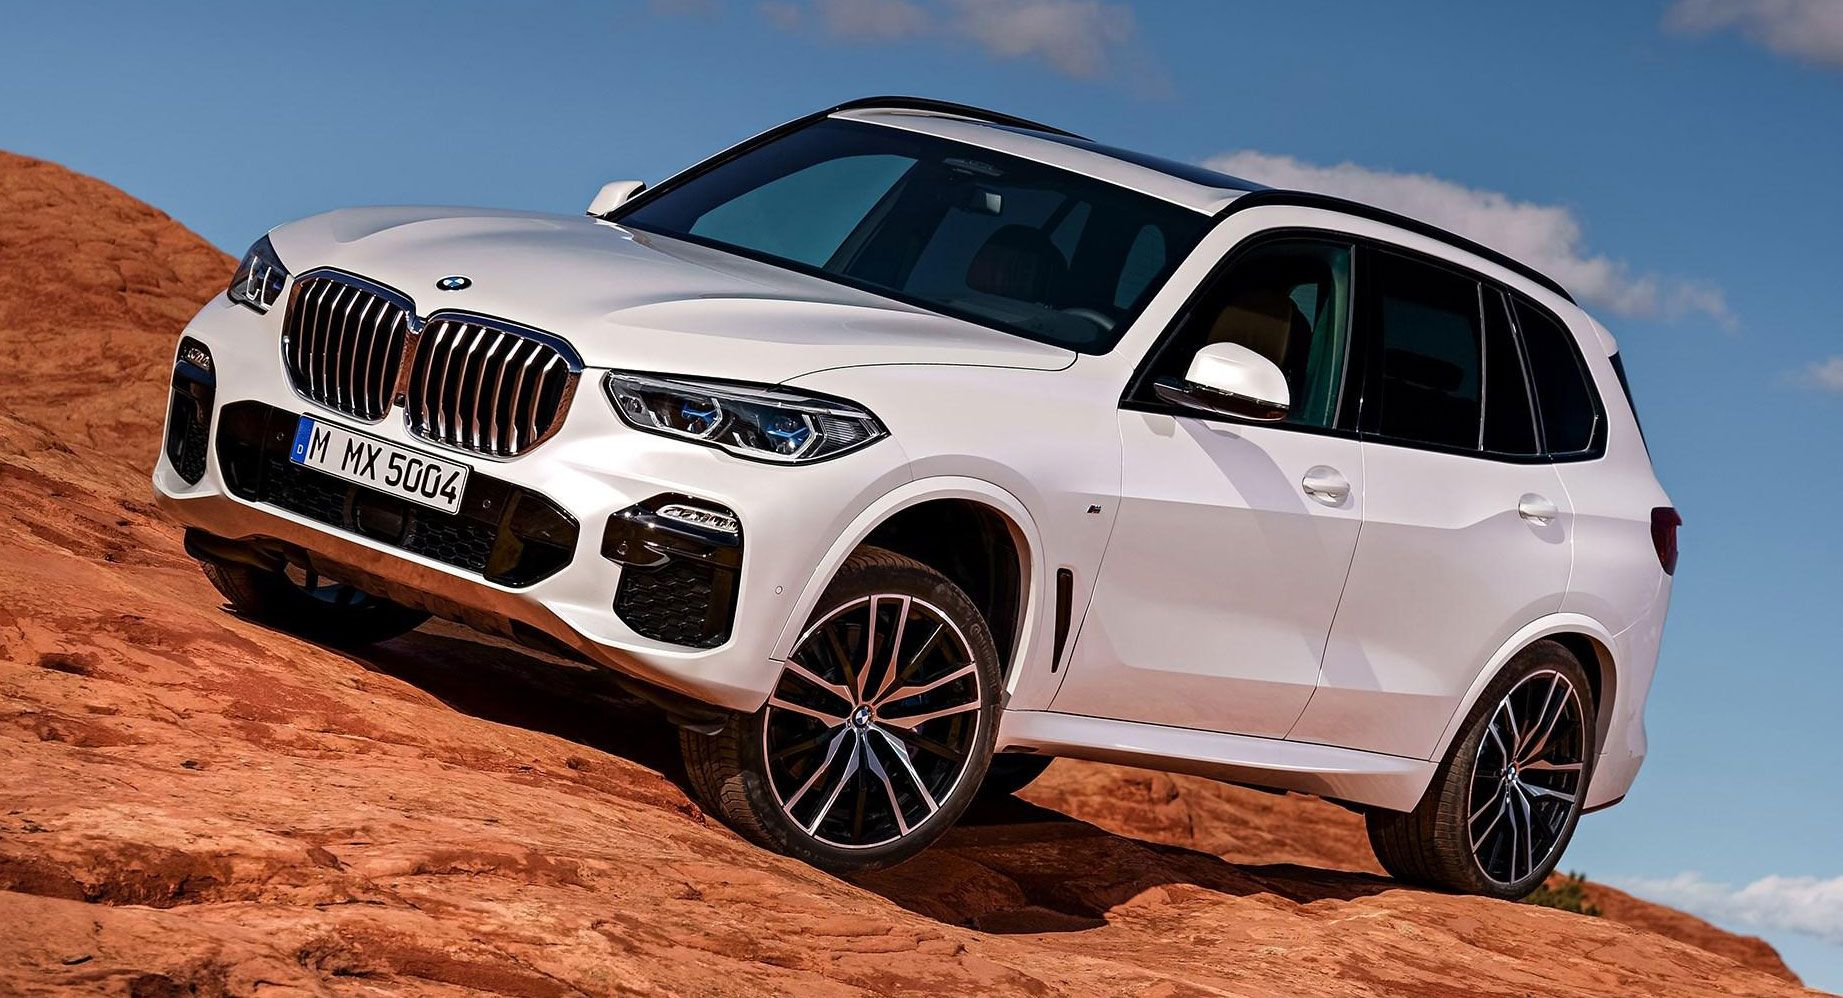 2019-BMW-X5-G05-Carscoops-5545